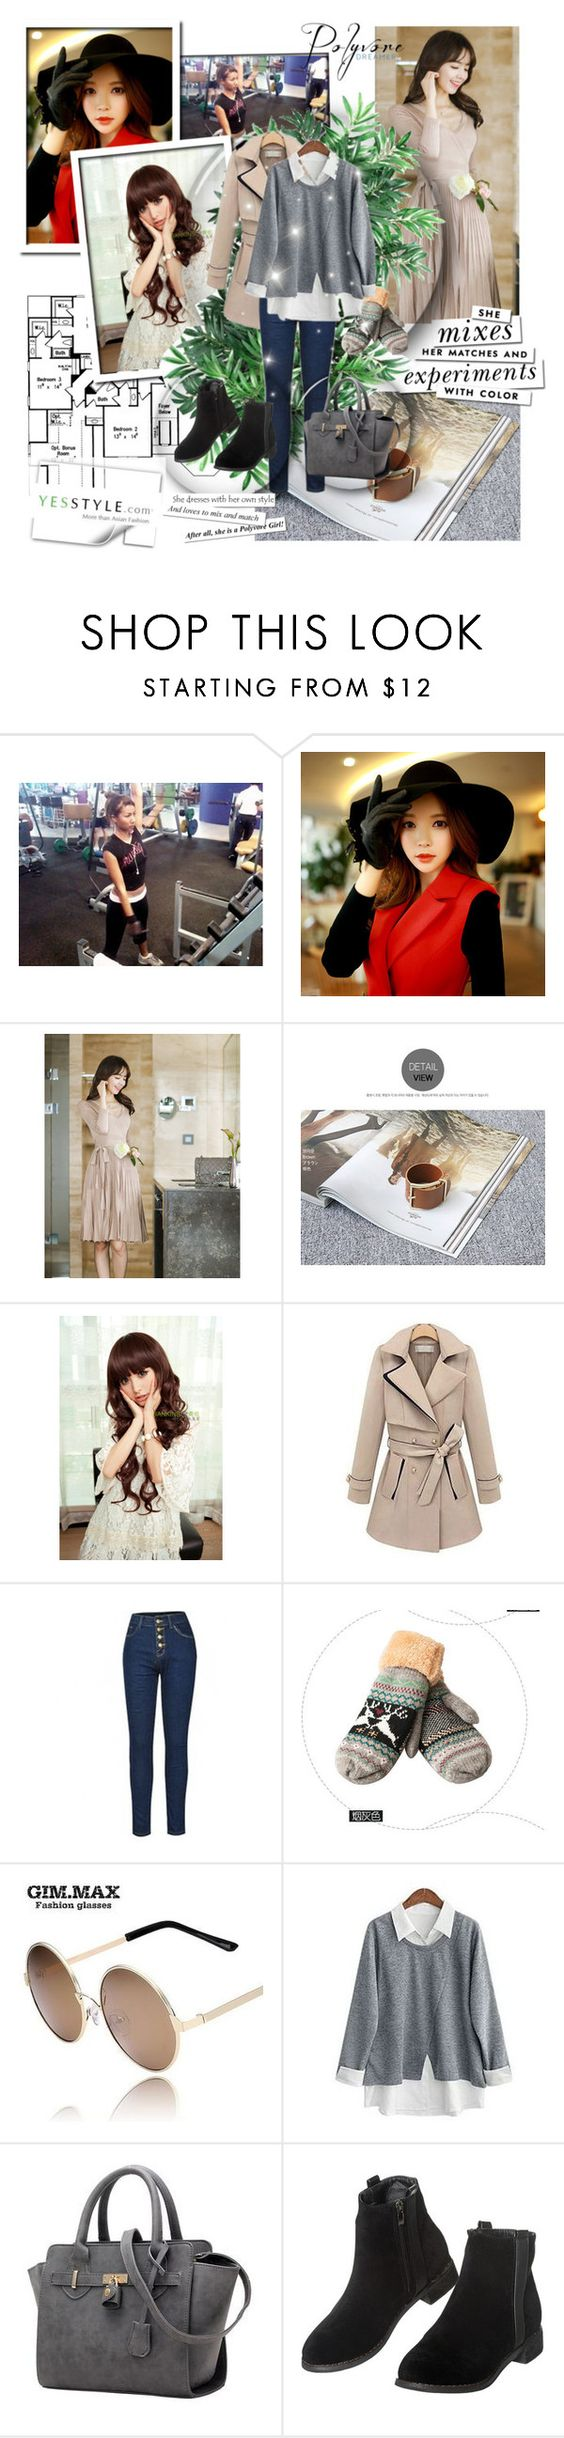 """""""YesStyle - 10% off coupon"""" by lejla-djerzic ❤ liked on Polyvore featuring Dabuwawa, Attrangs, Naning9, Sankins, Furifs, Flore, Lose Show, GIMMAX Glasses, LineShow and Bayo"""